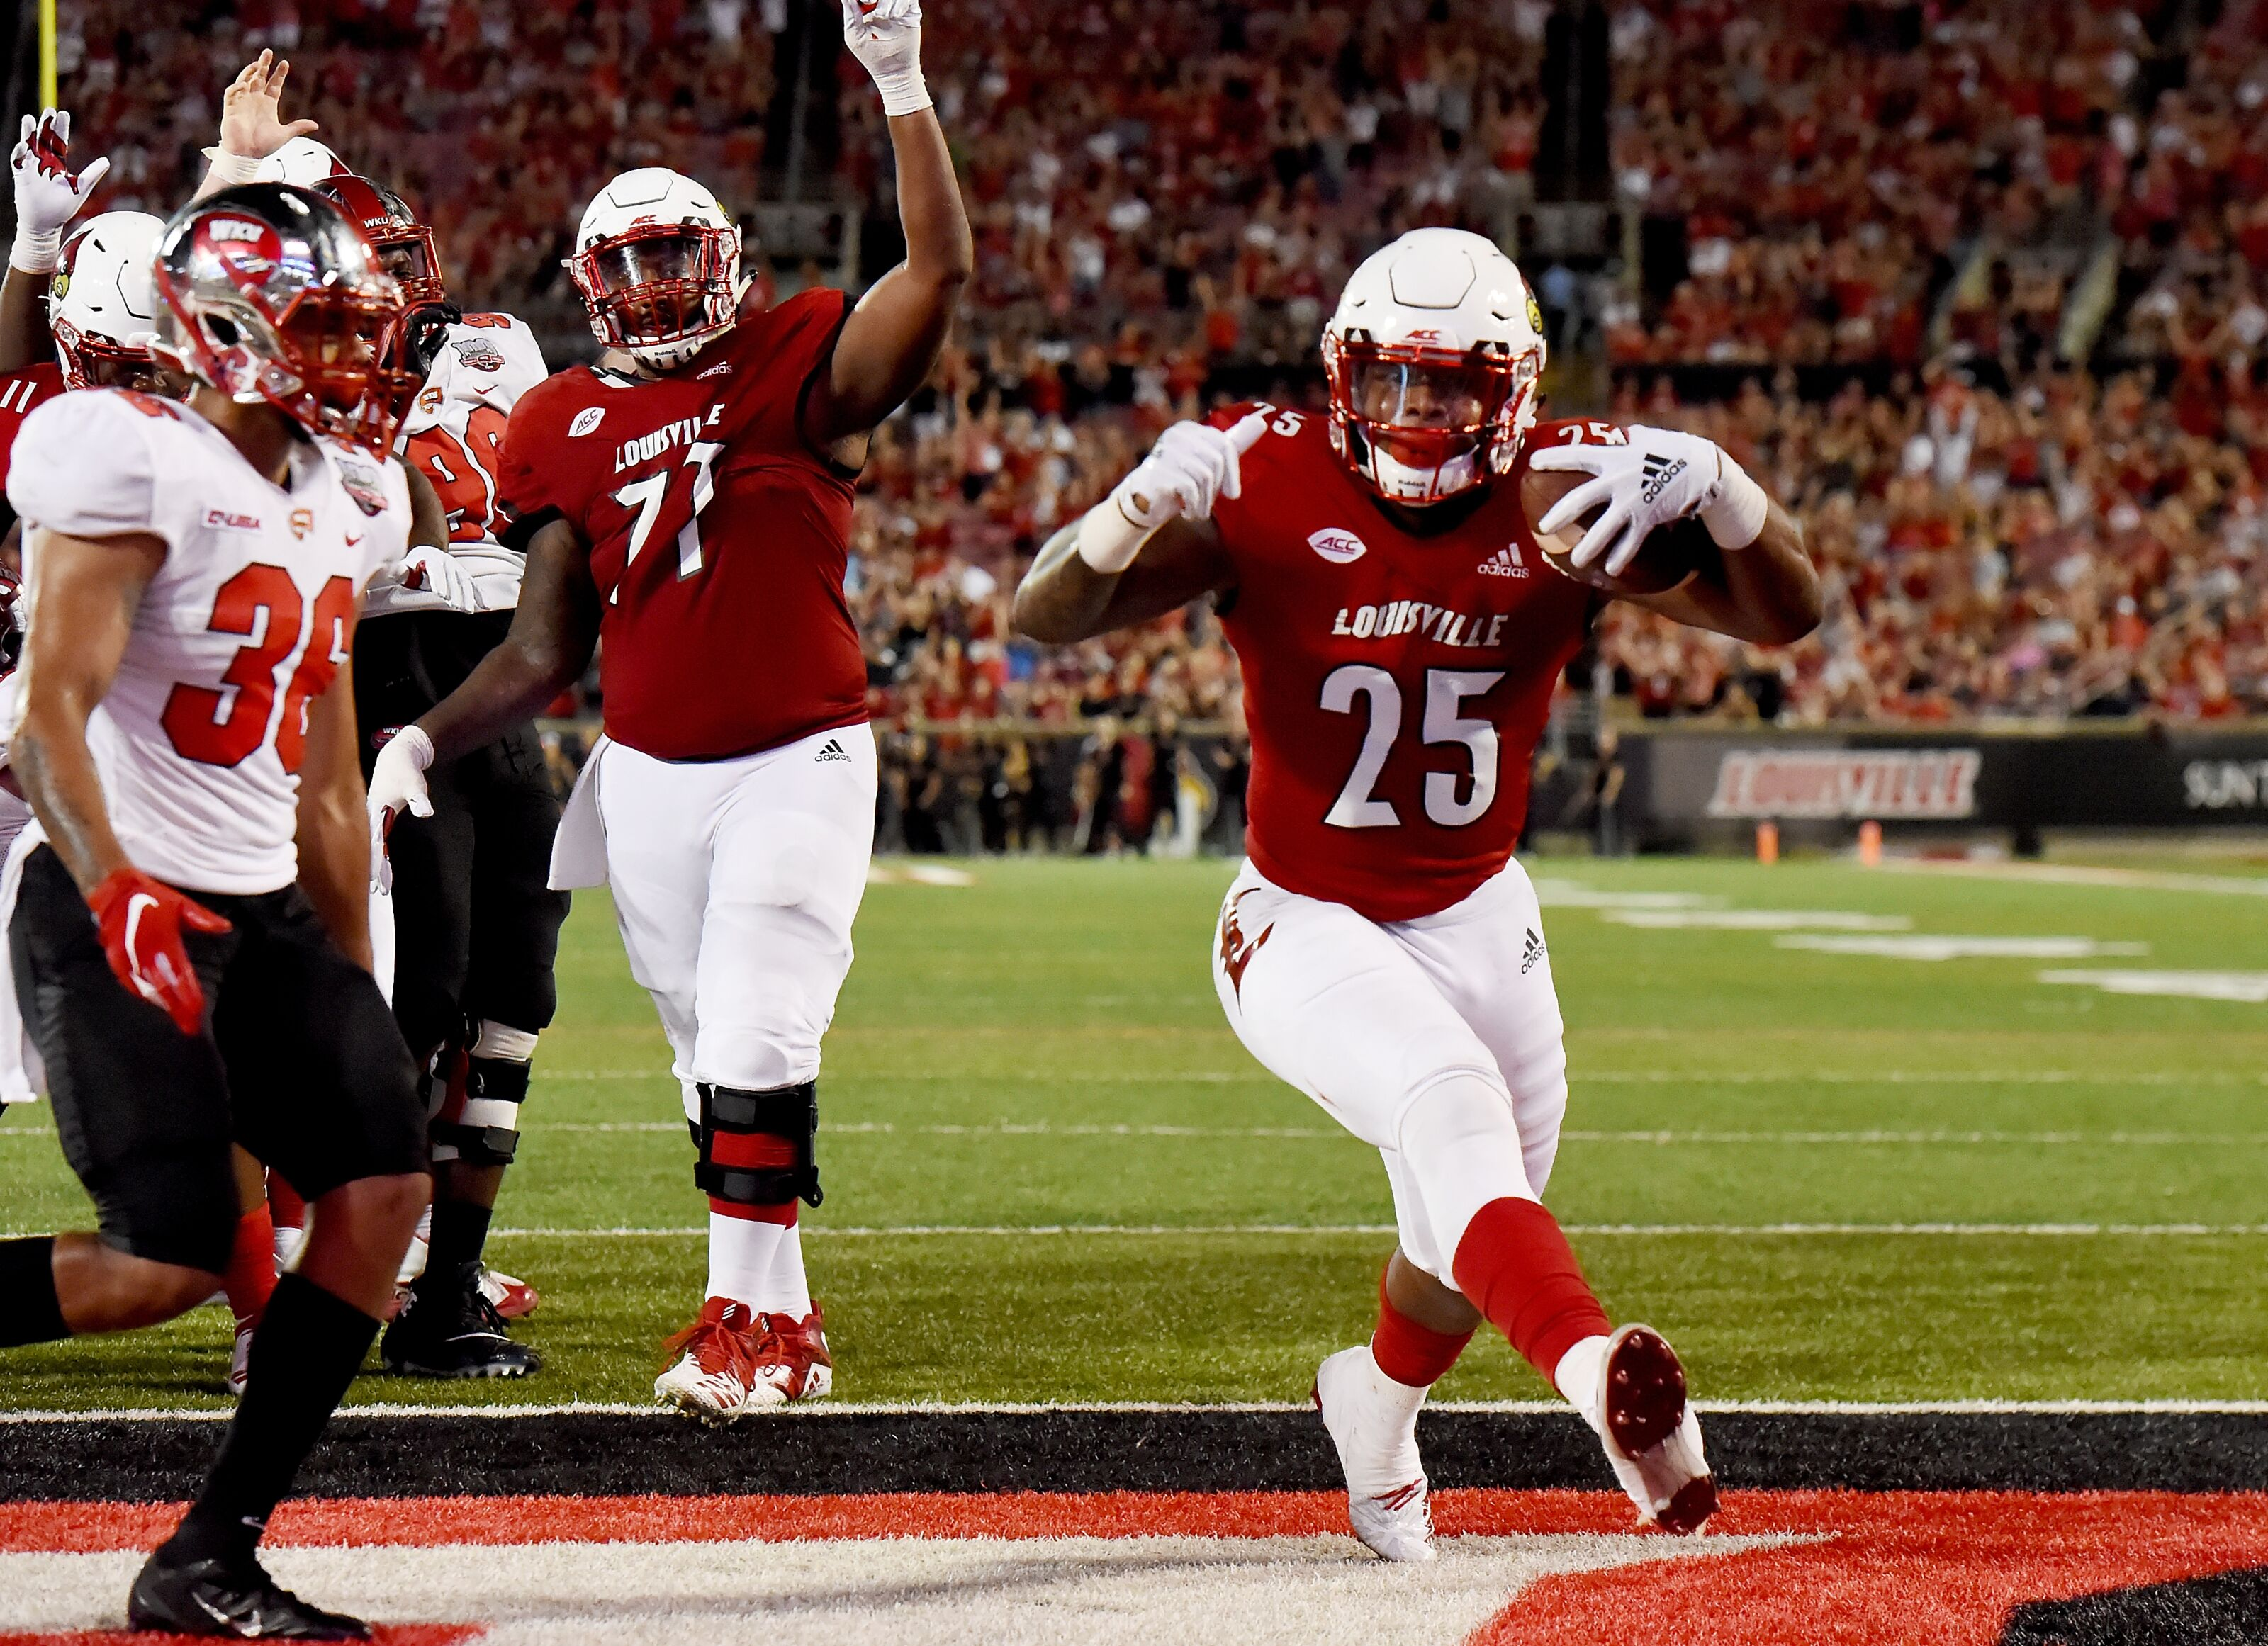 Dae Williams could be a touchdown machine for Louisville football